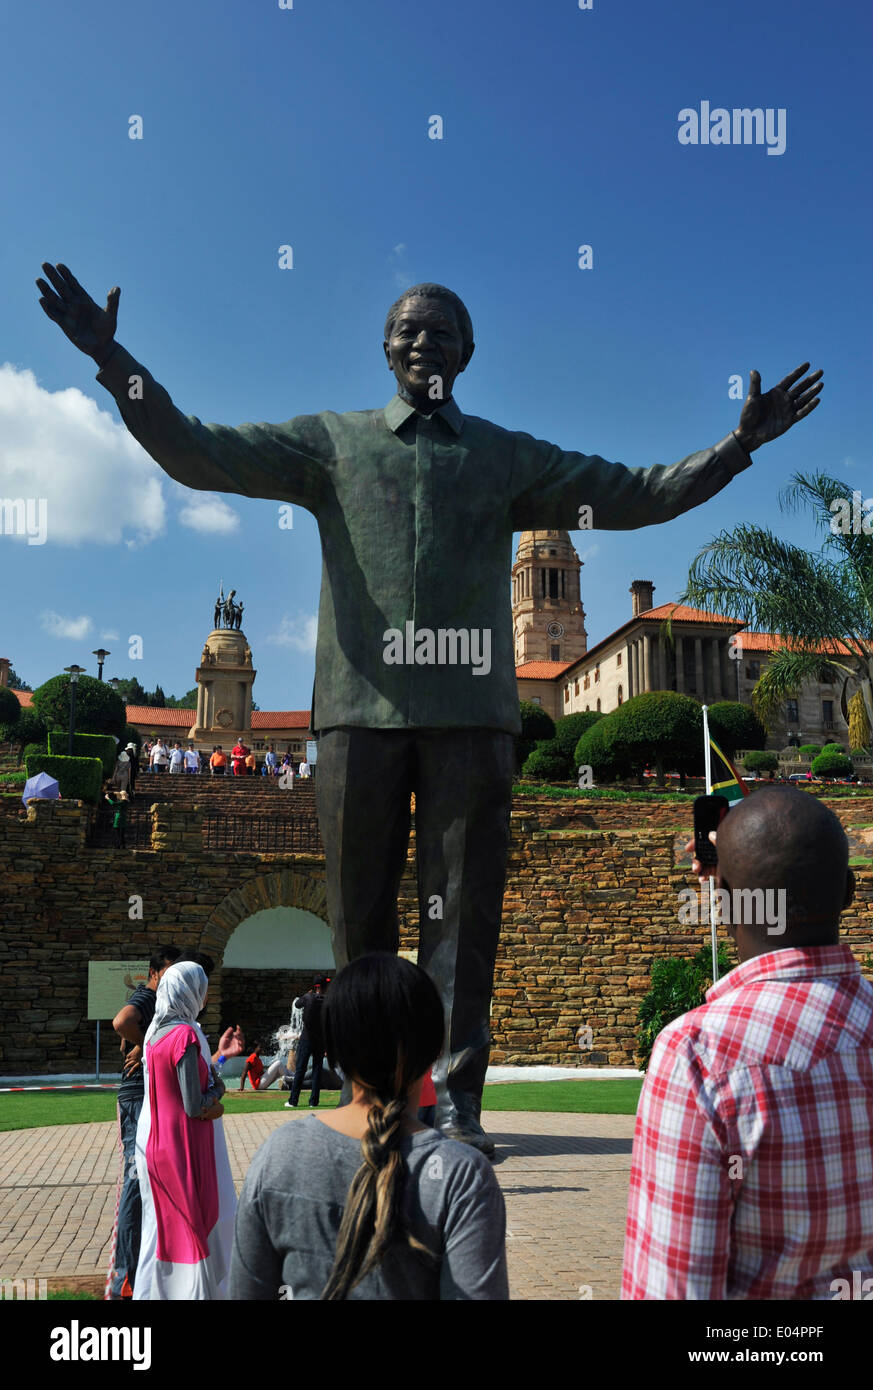 Pretoria, Gauteng, South Africa, people viewing statue of Nelson Mandela at Union Buildings, seat of government, city - Stock Image